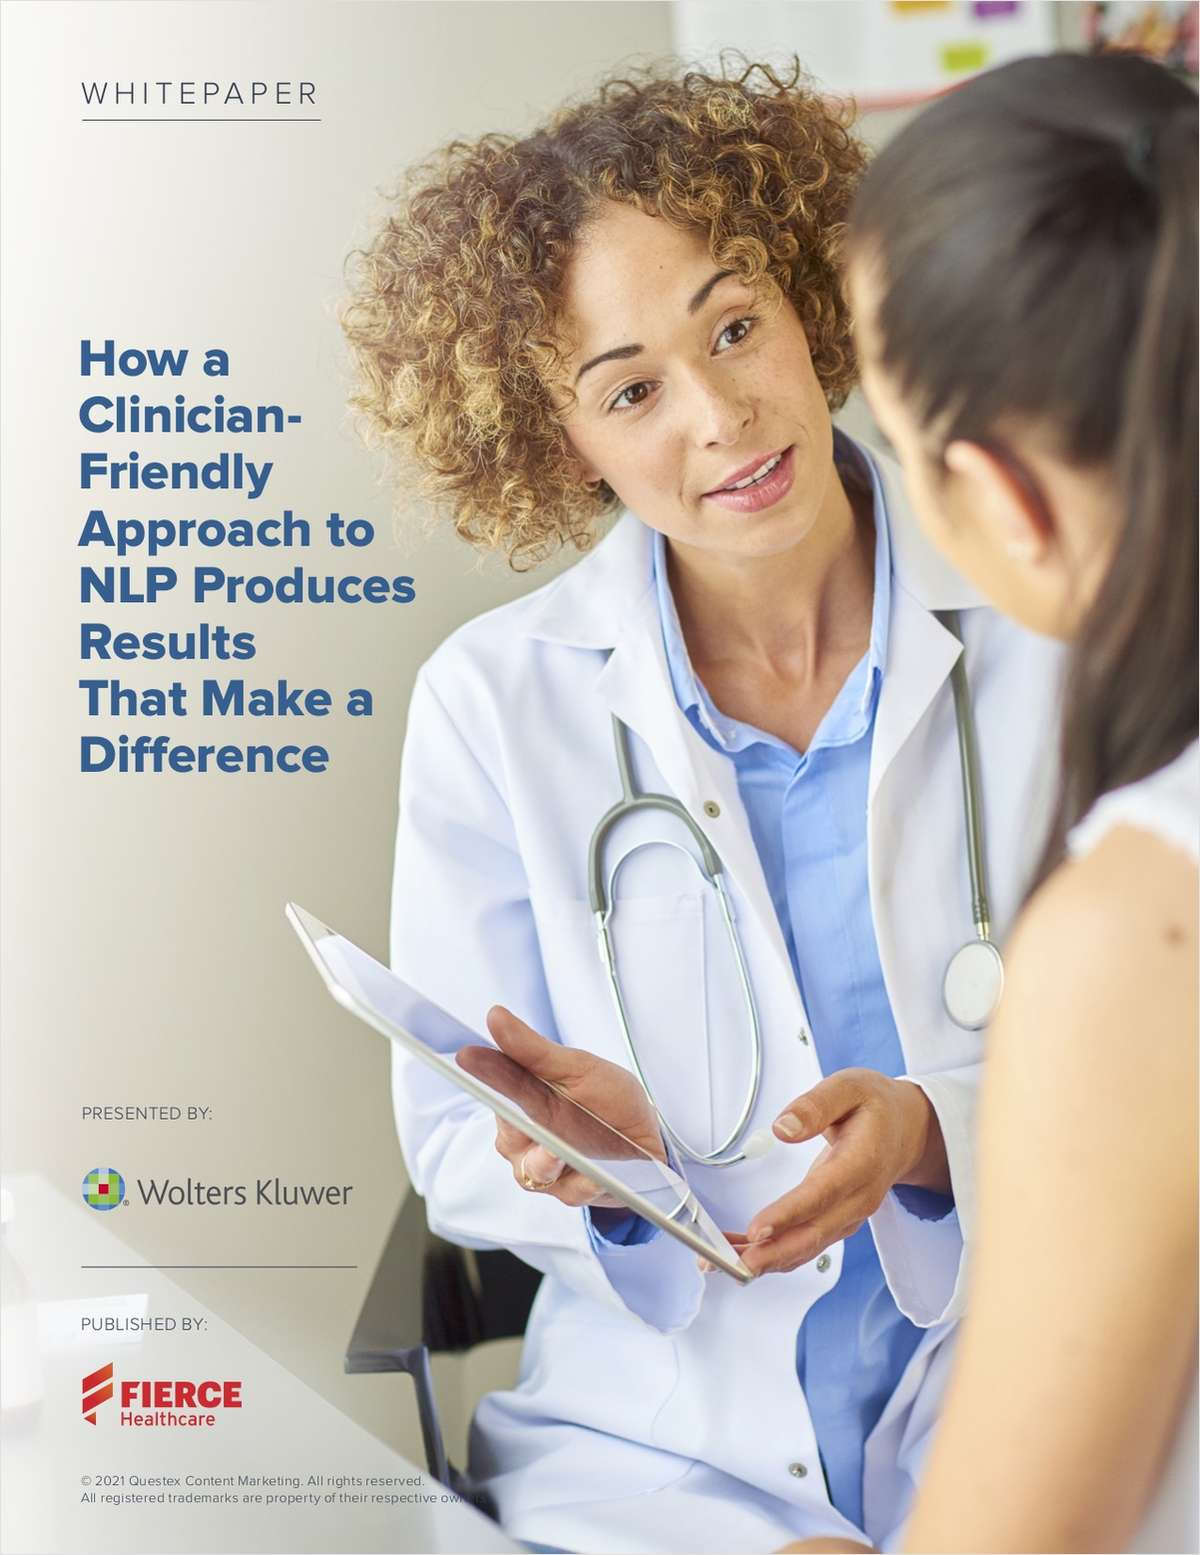 How a Clinician-Friendly Approach to NLP Produces Results That Make a Difference